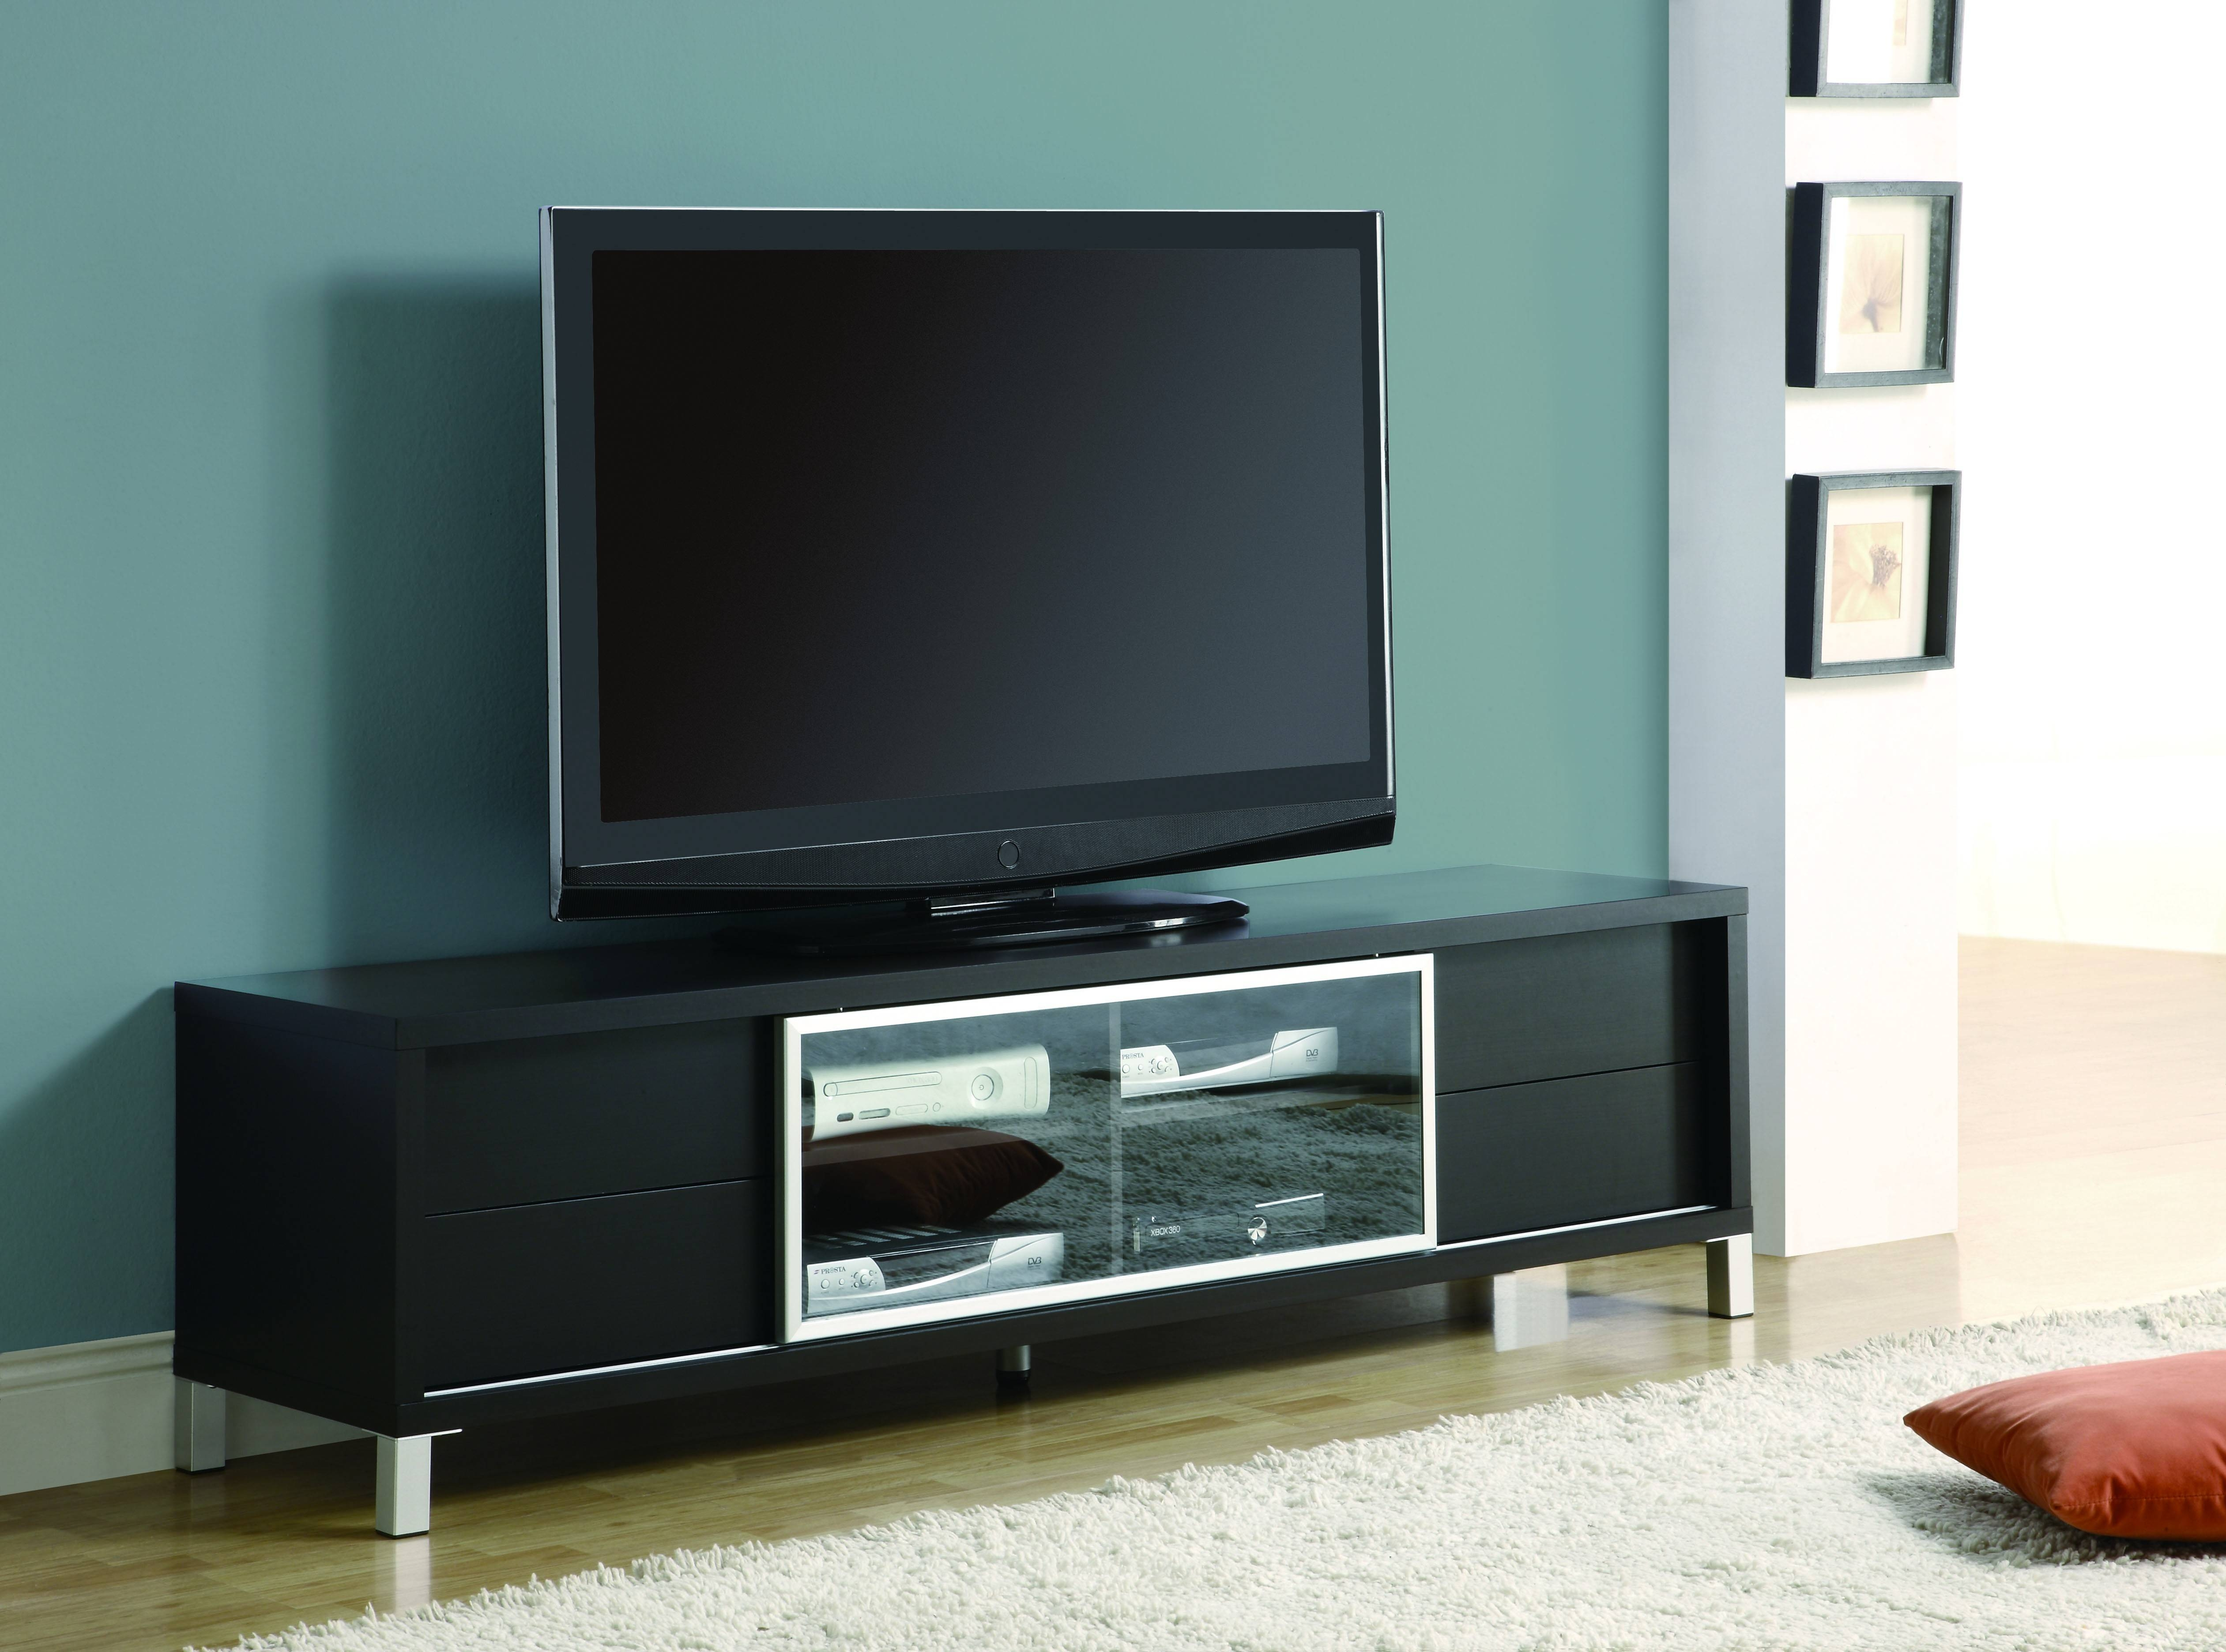 Black Painted Oak Wood Wide Screen Tv Stand Mixed Light Blue Wall in Stylish Tv Stands (Image 1 of 15)